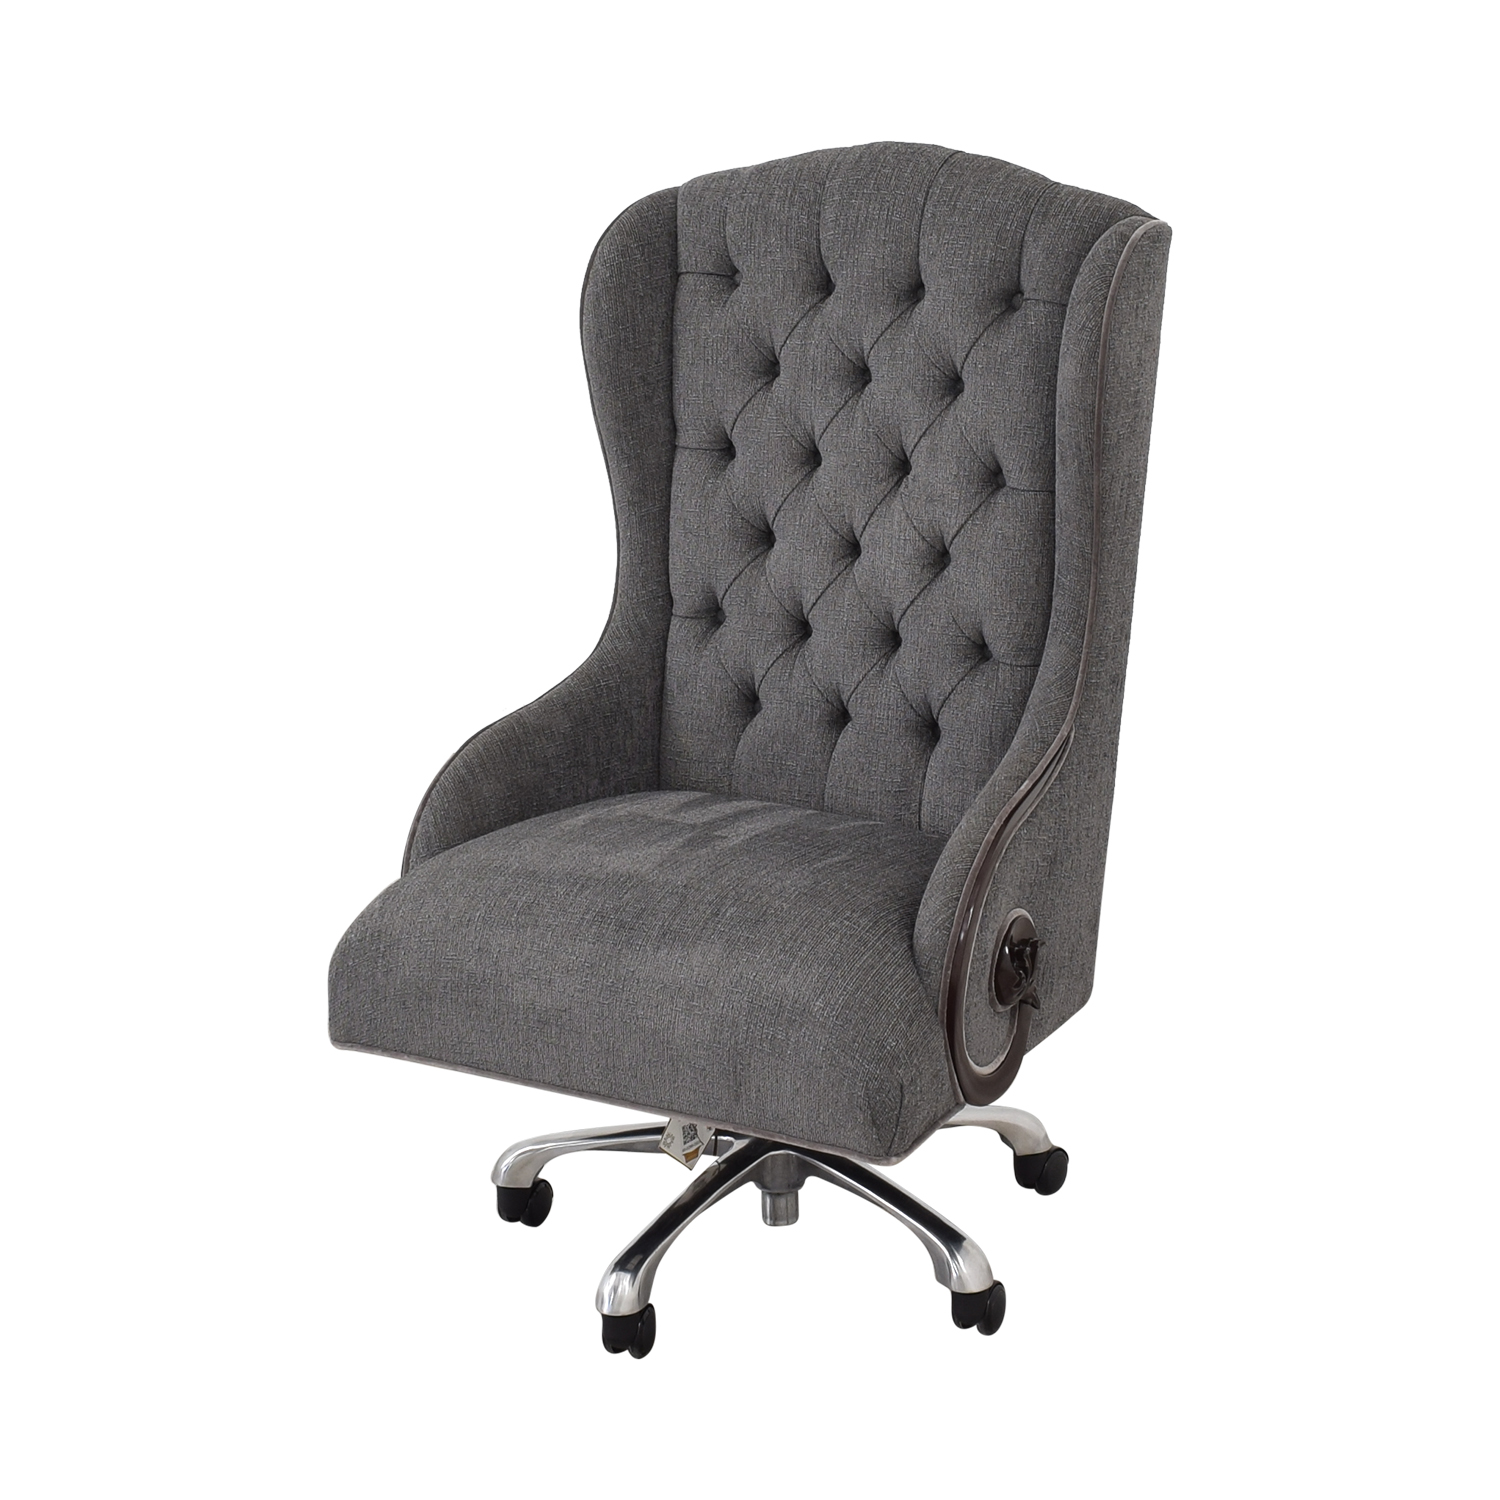 buy Christopher Guy The Chairman Office Chair Christopher Guy Home Office Chairs